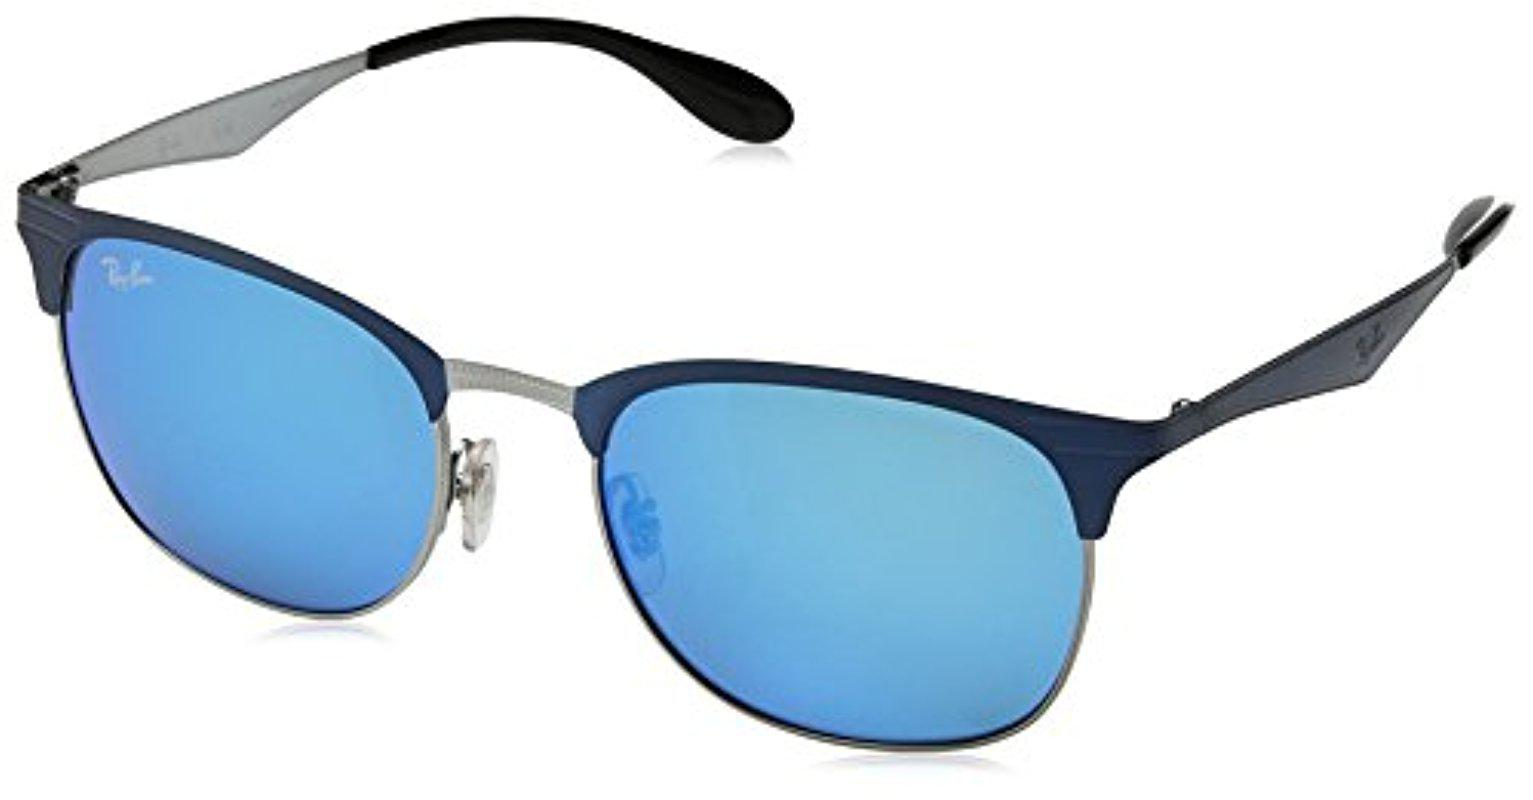 f8a2dae240 Ray Ban 4216 On Sale « One More Soul